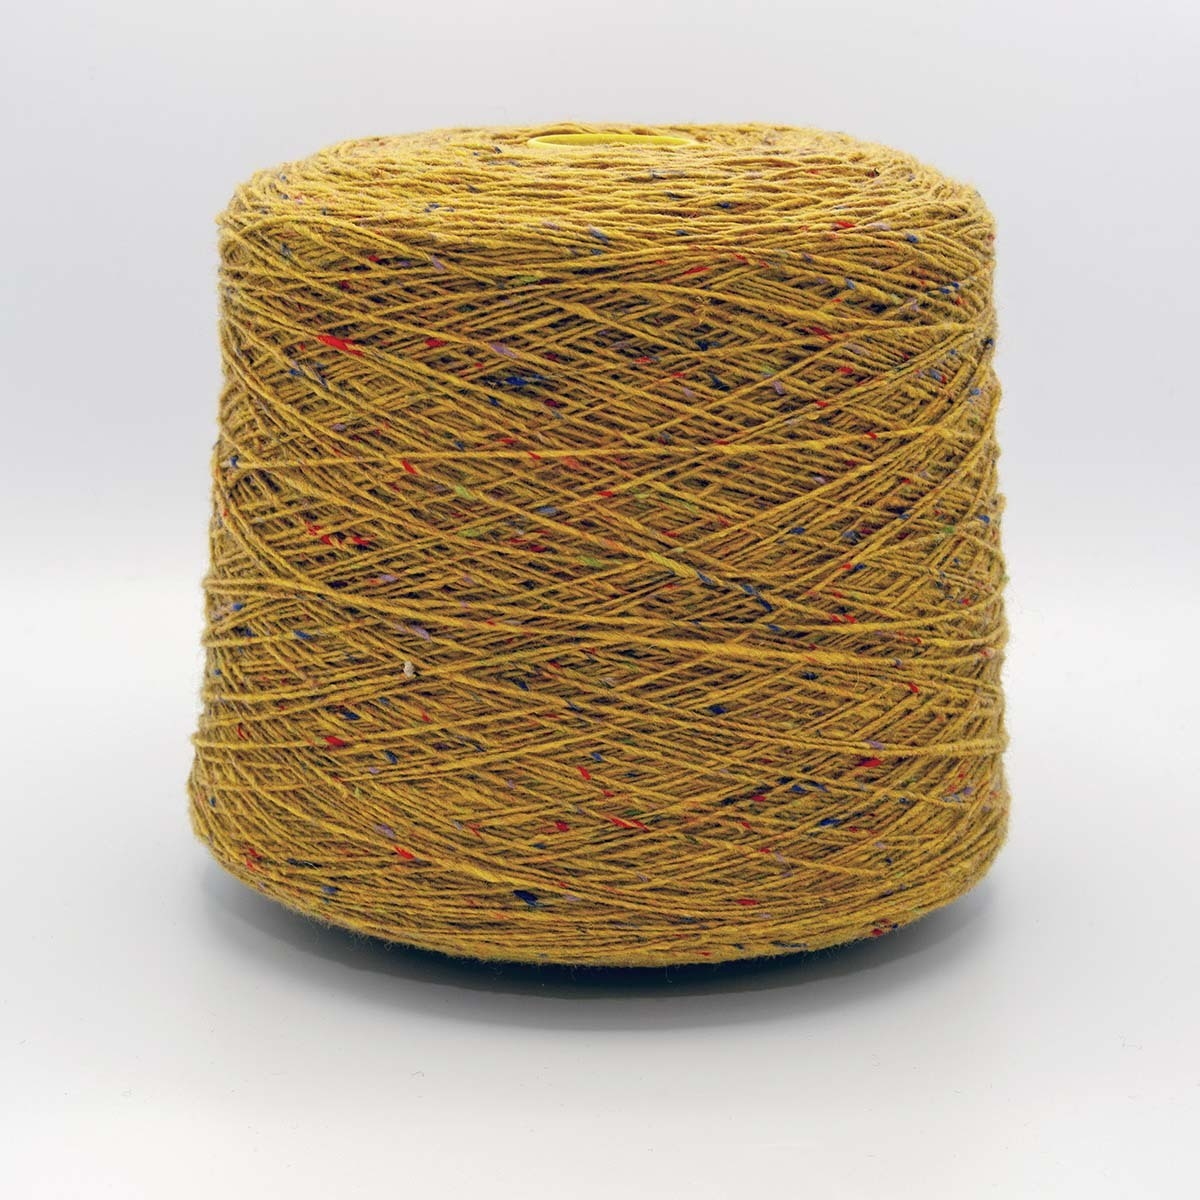 Knoll Yarns Soft Donegal (одинарный твид) - 5568